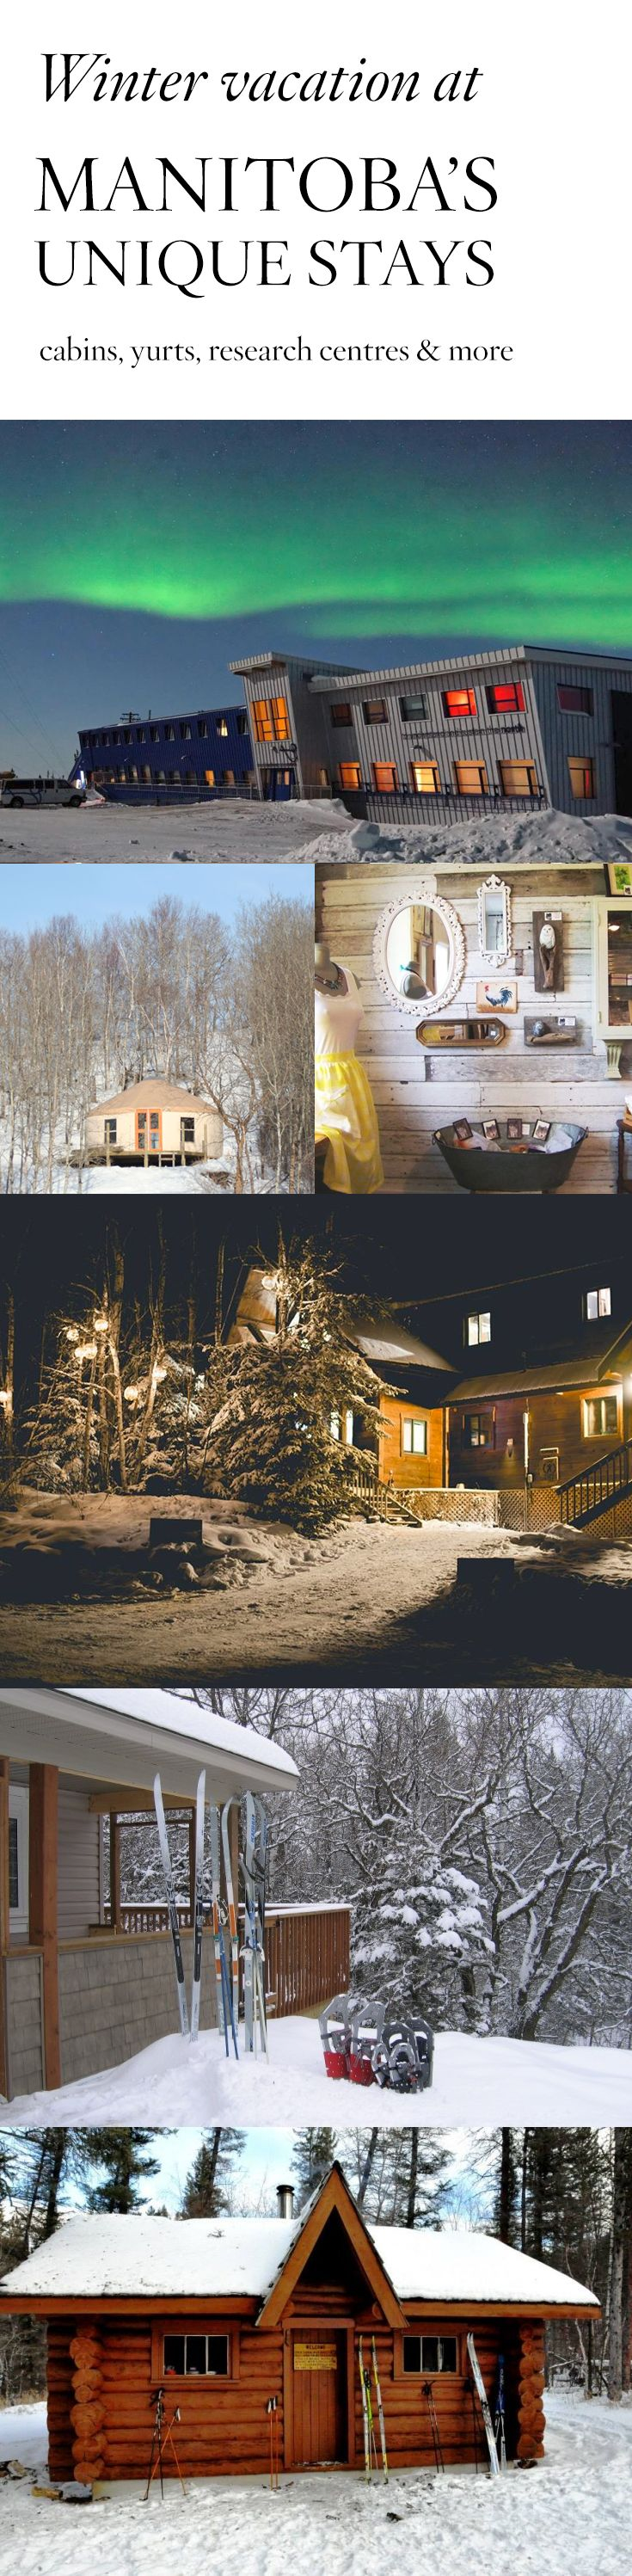 Yurts, cabins and research centres: Experience a winter wonderland in Manitoba, Canada at one of our most unique stays.